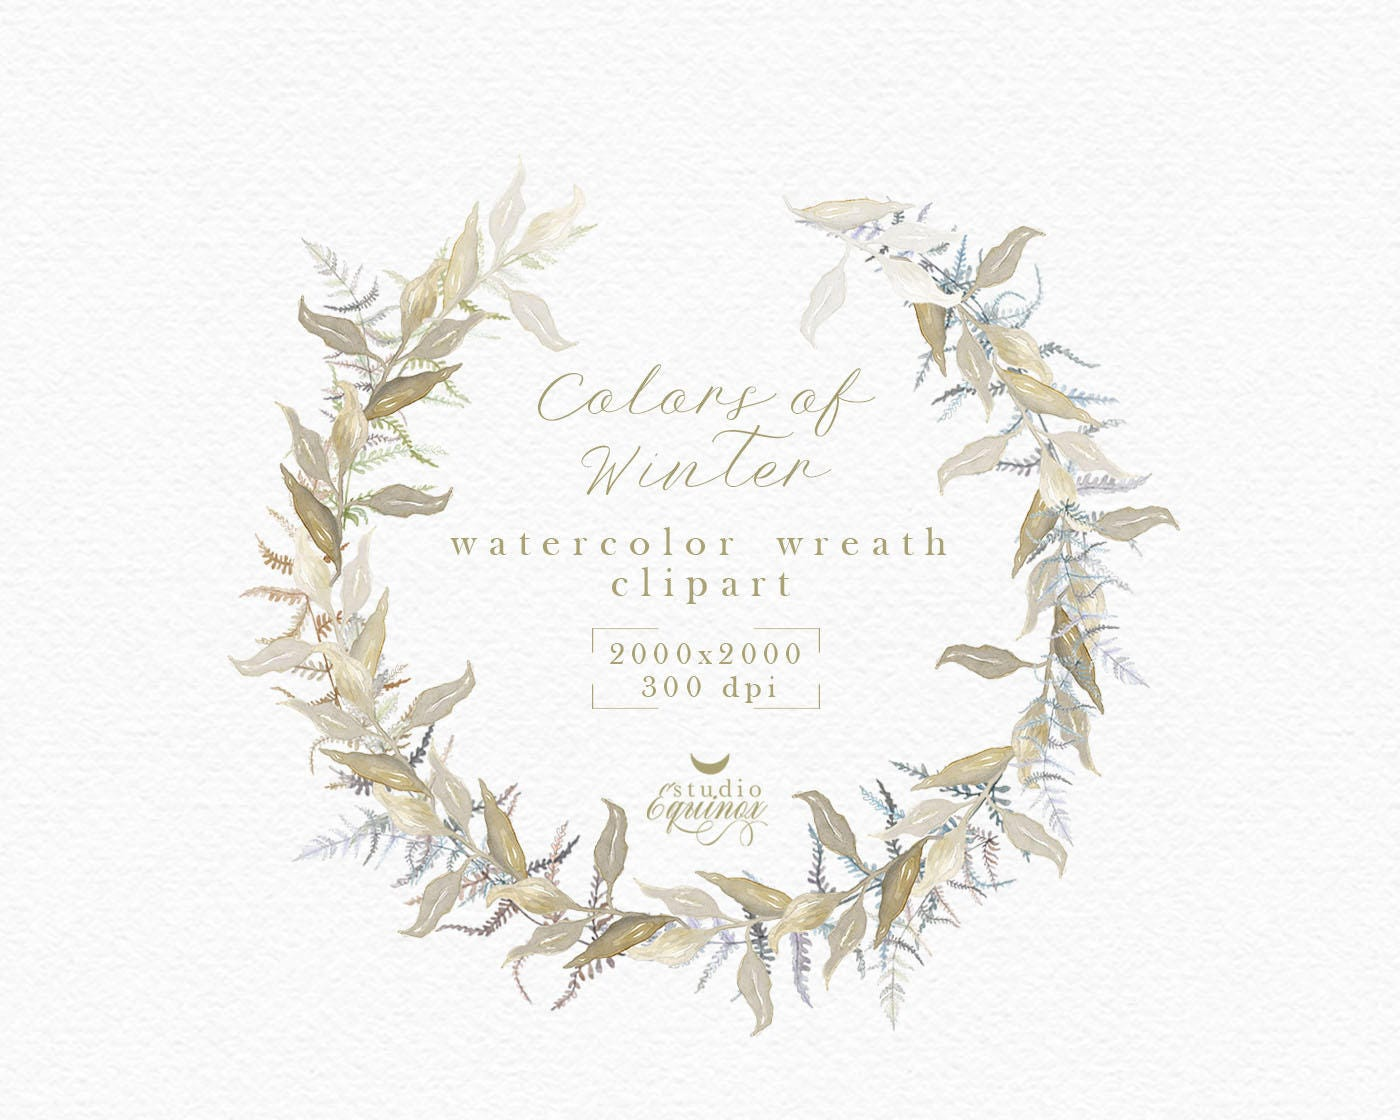 Watercolor Wreath Clipart Fern And Leaves Winter Rustic Autumn